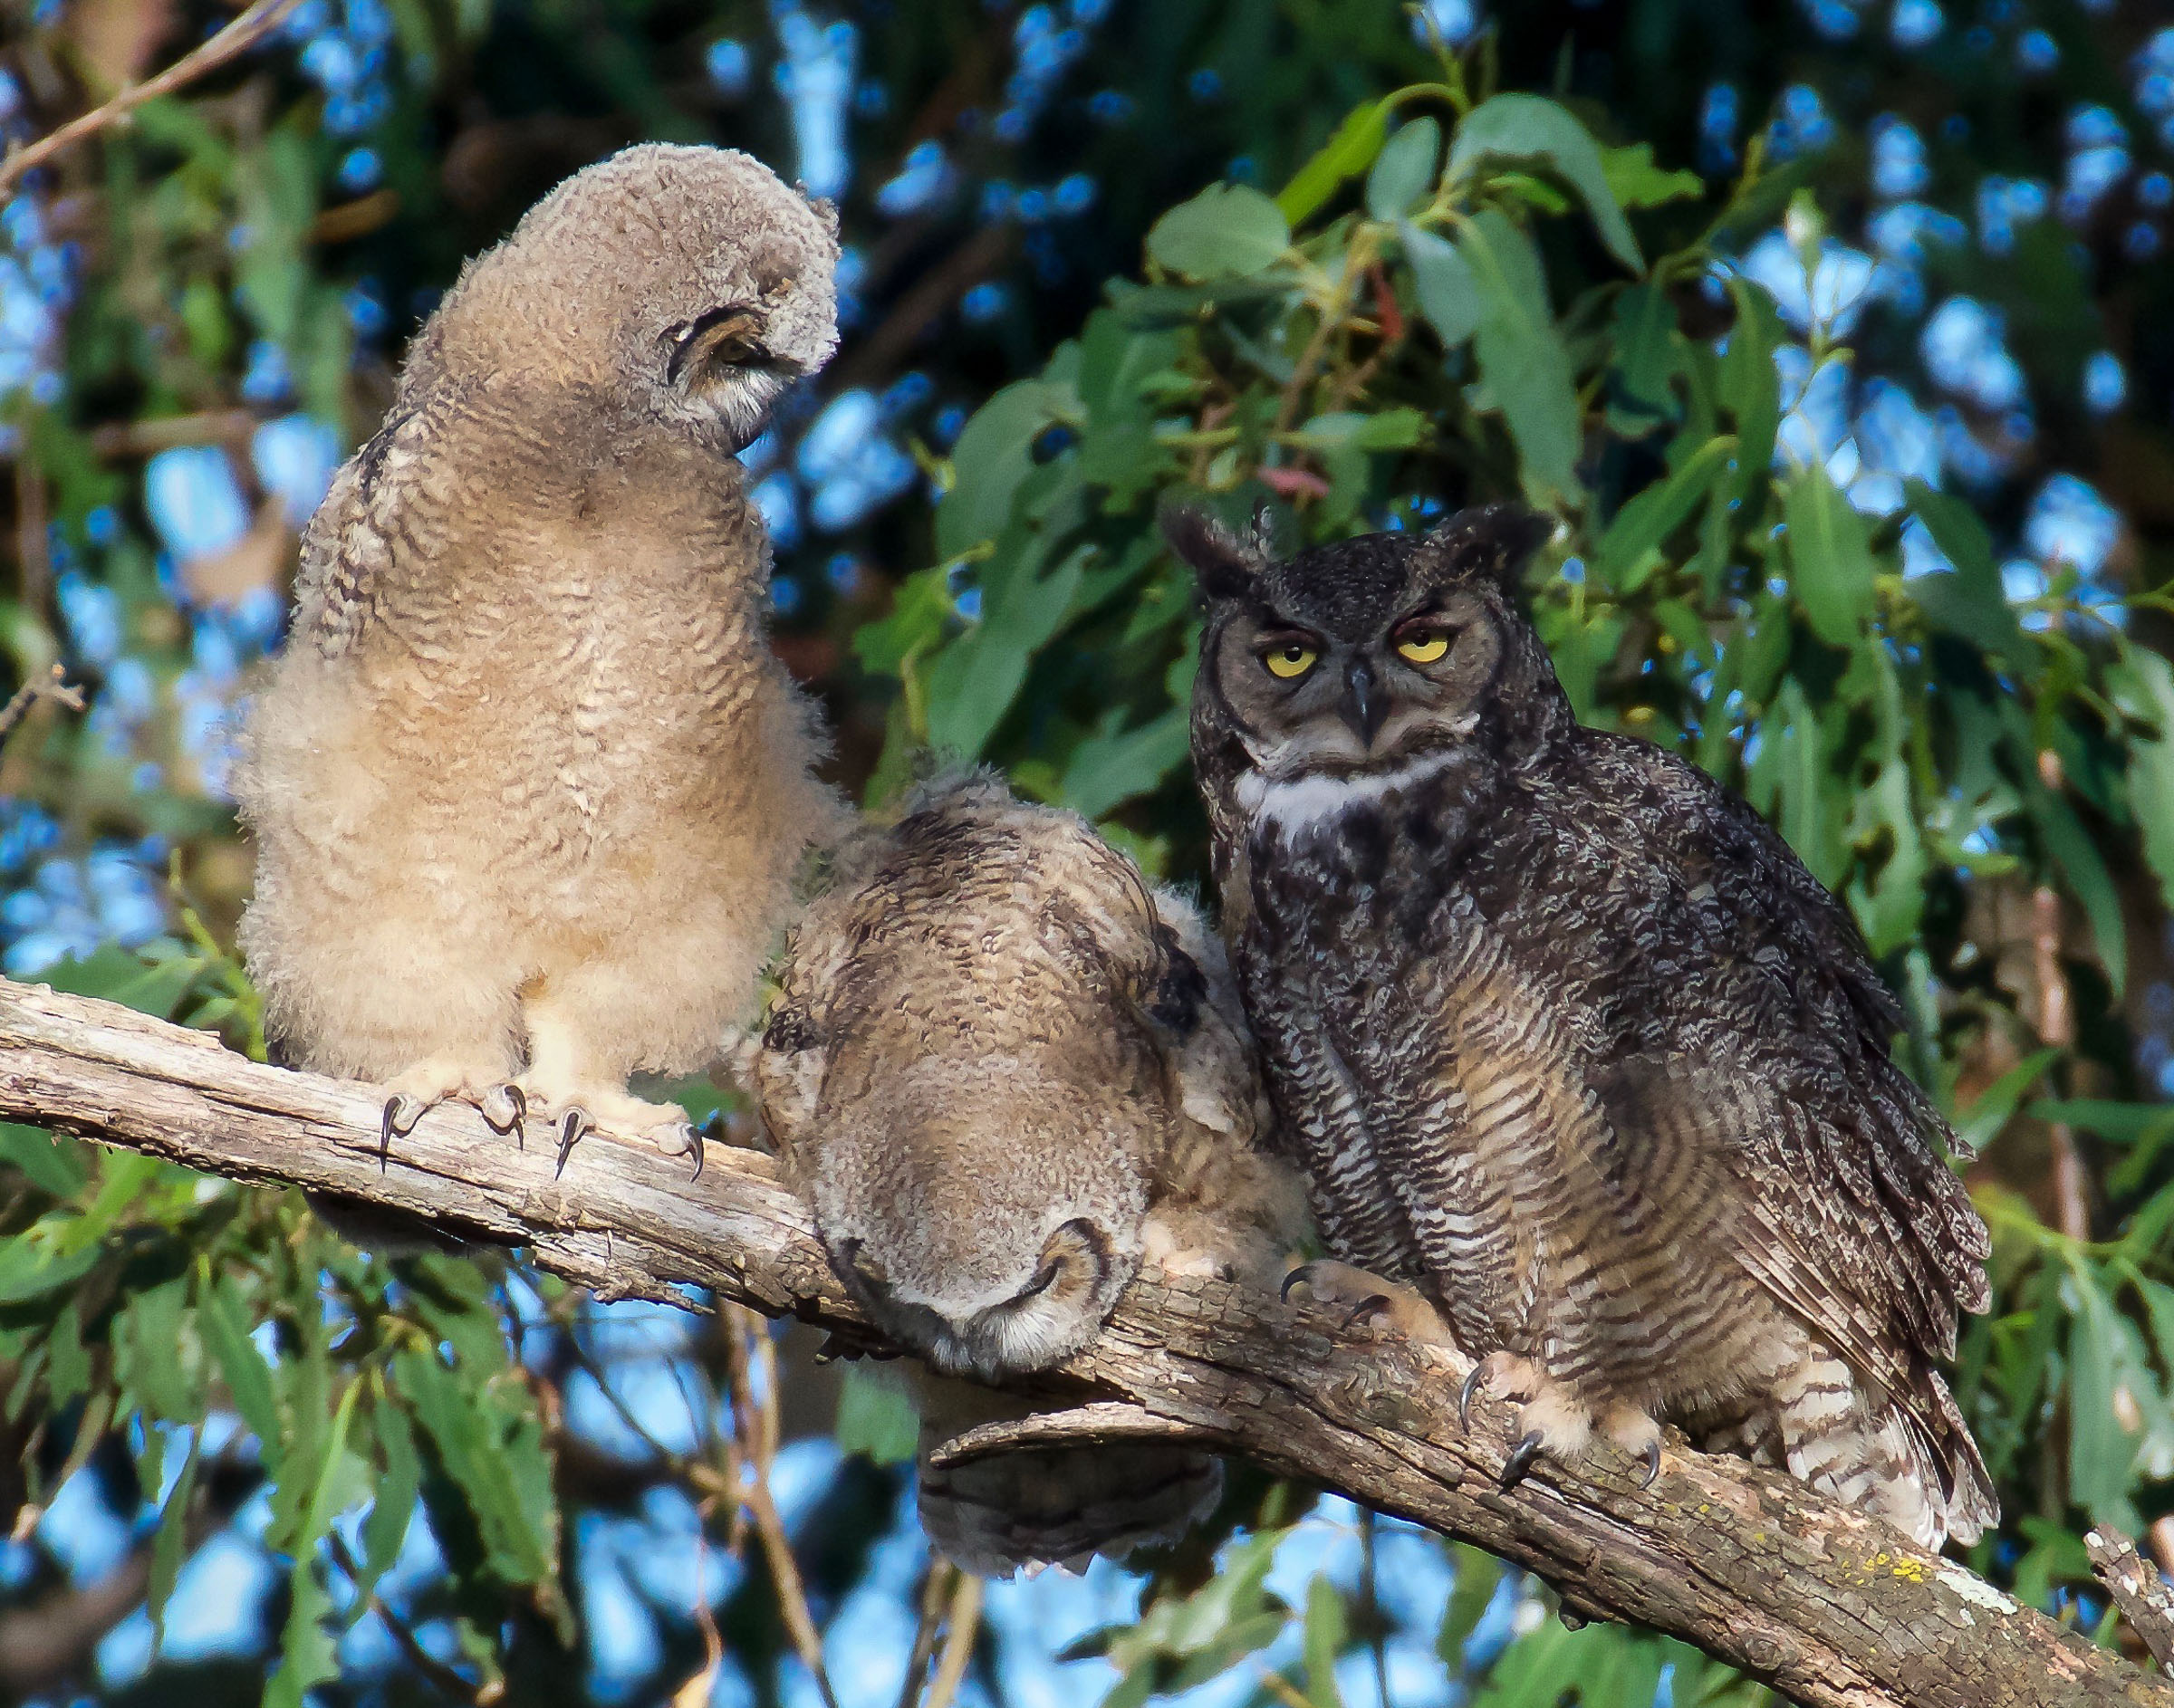 mother-great-horned-owl-grooming-owlets-7.jpg